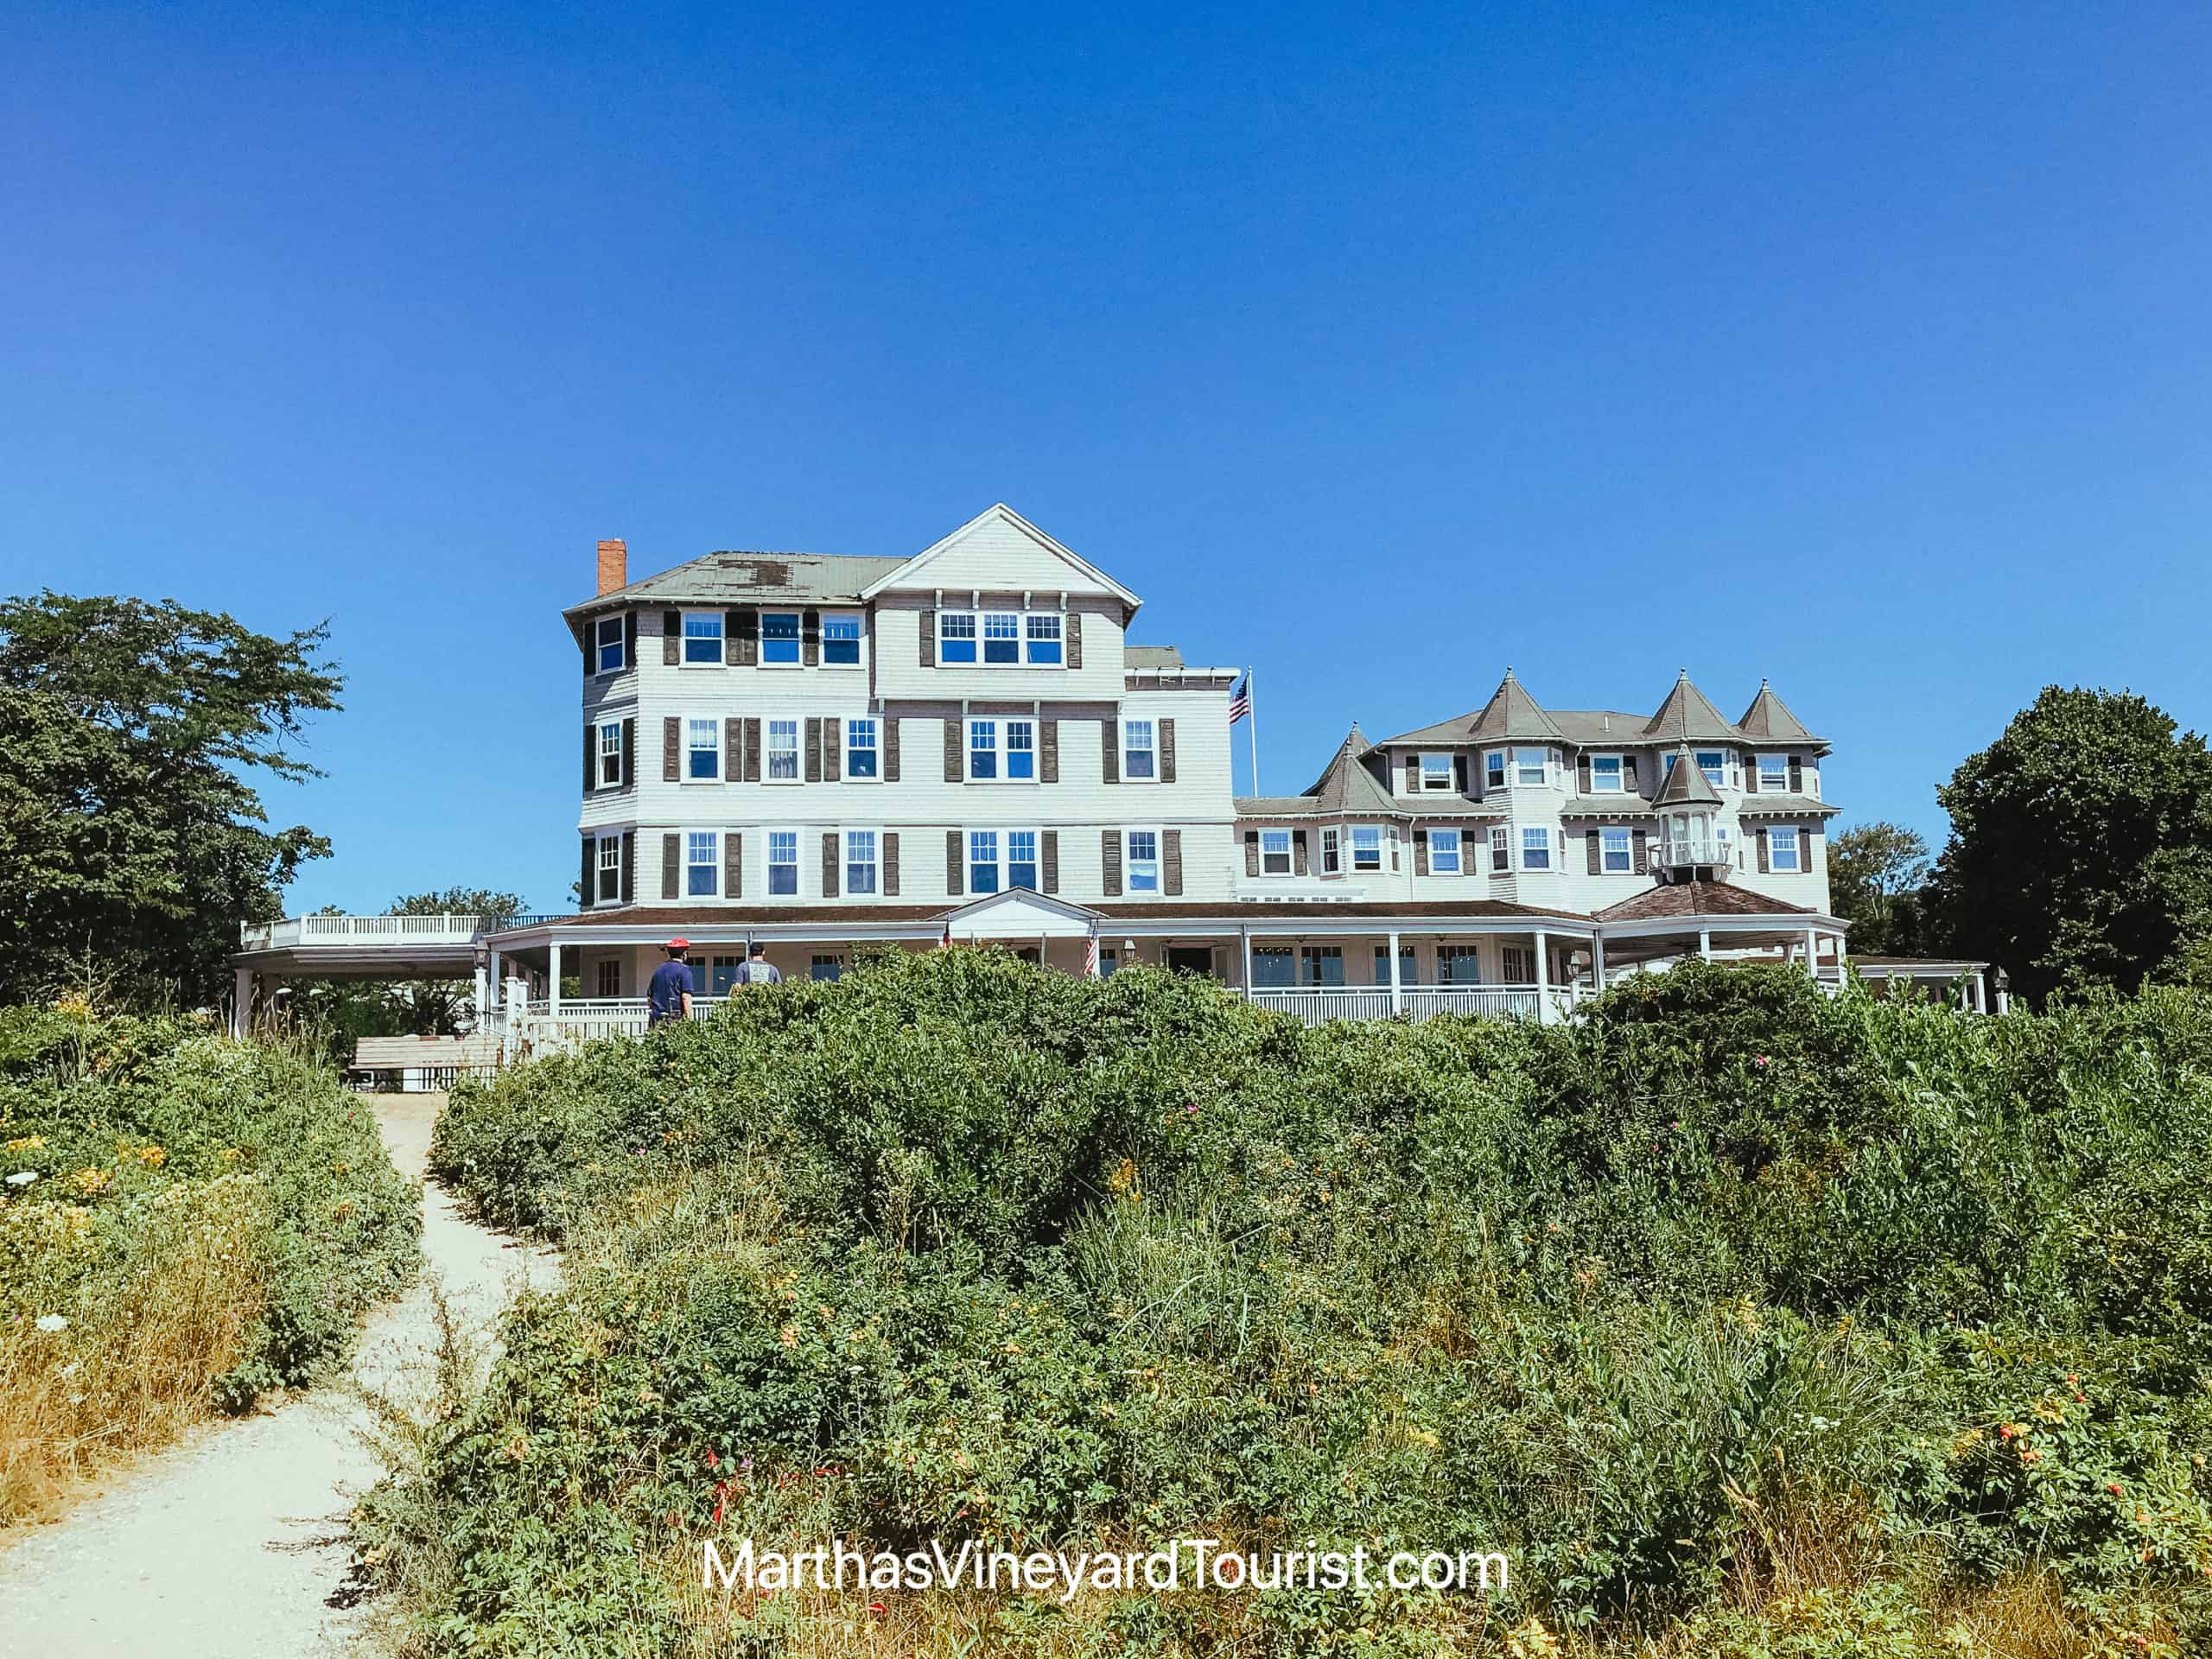 Edgartown Harbor View Hotel from the beach